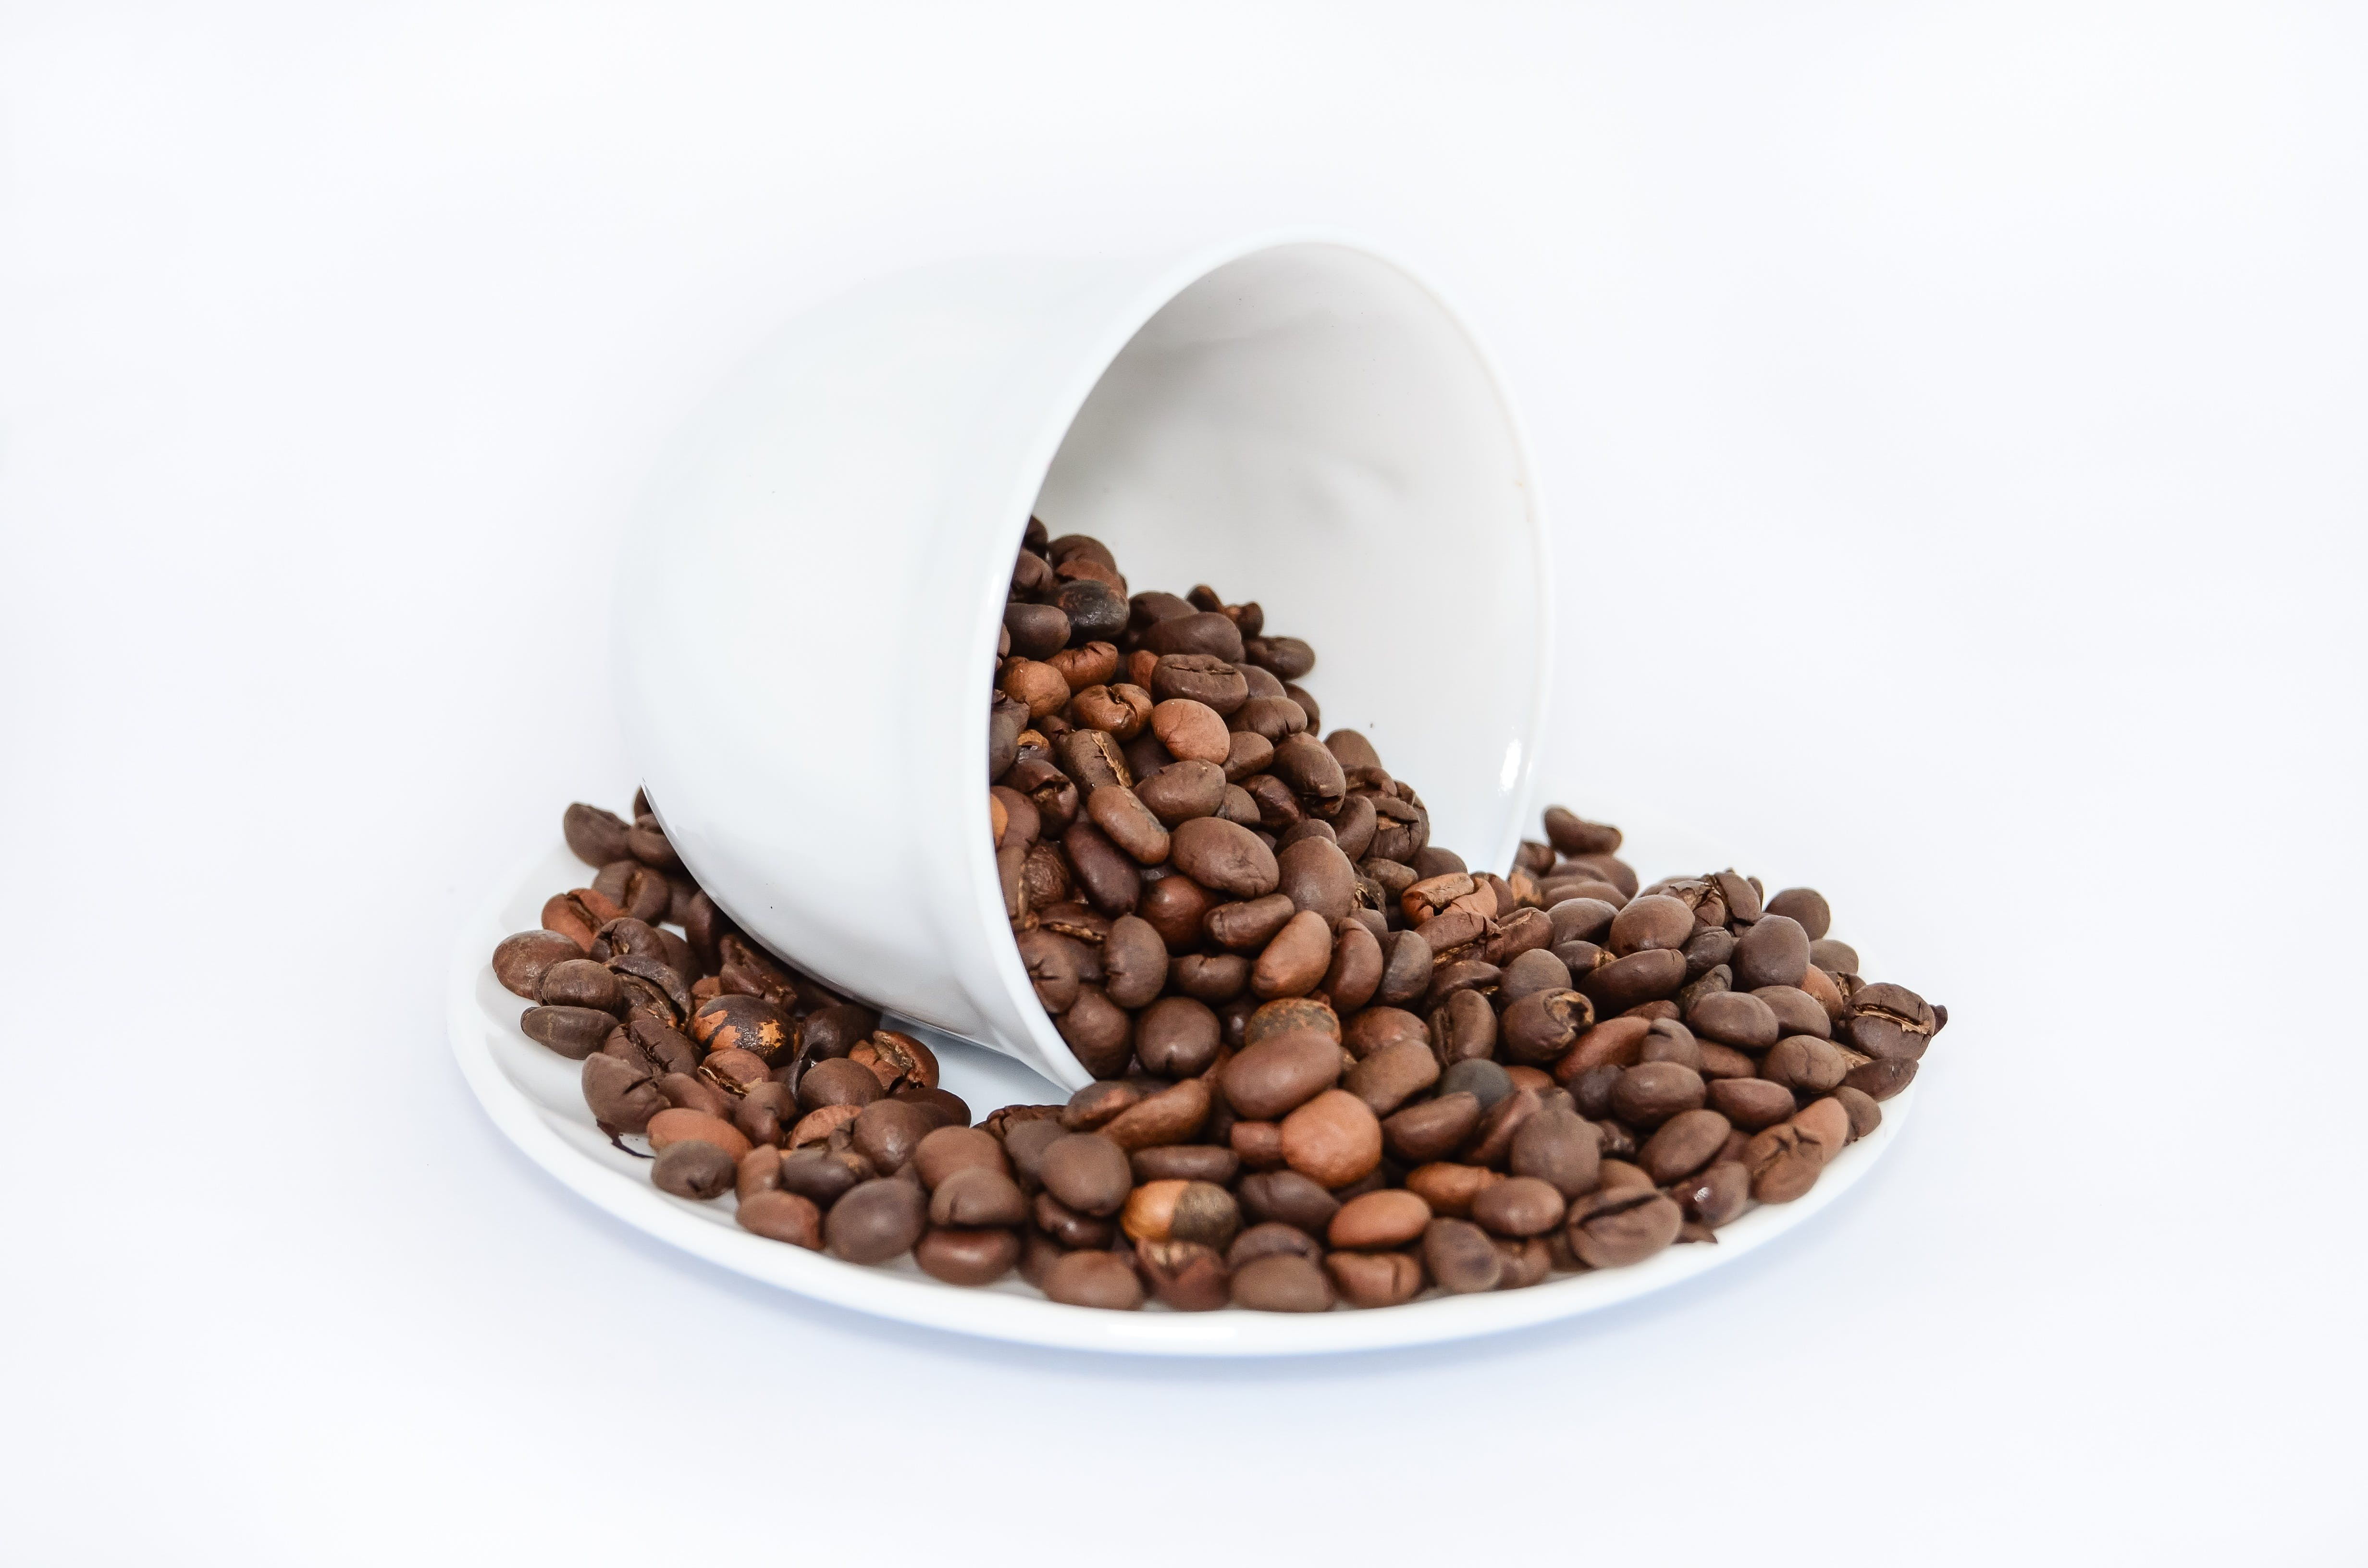 Coffee Beans on White Ceramic Saucer